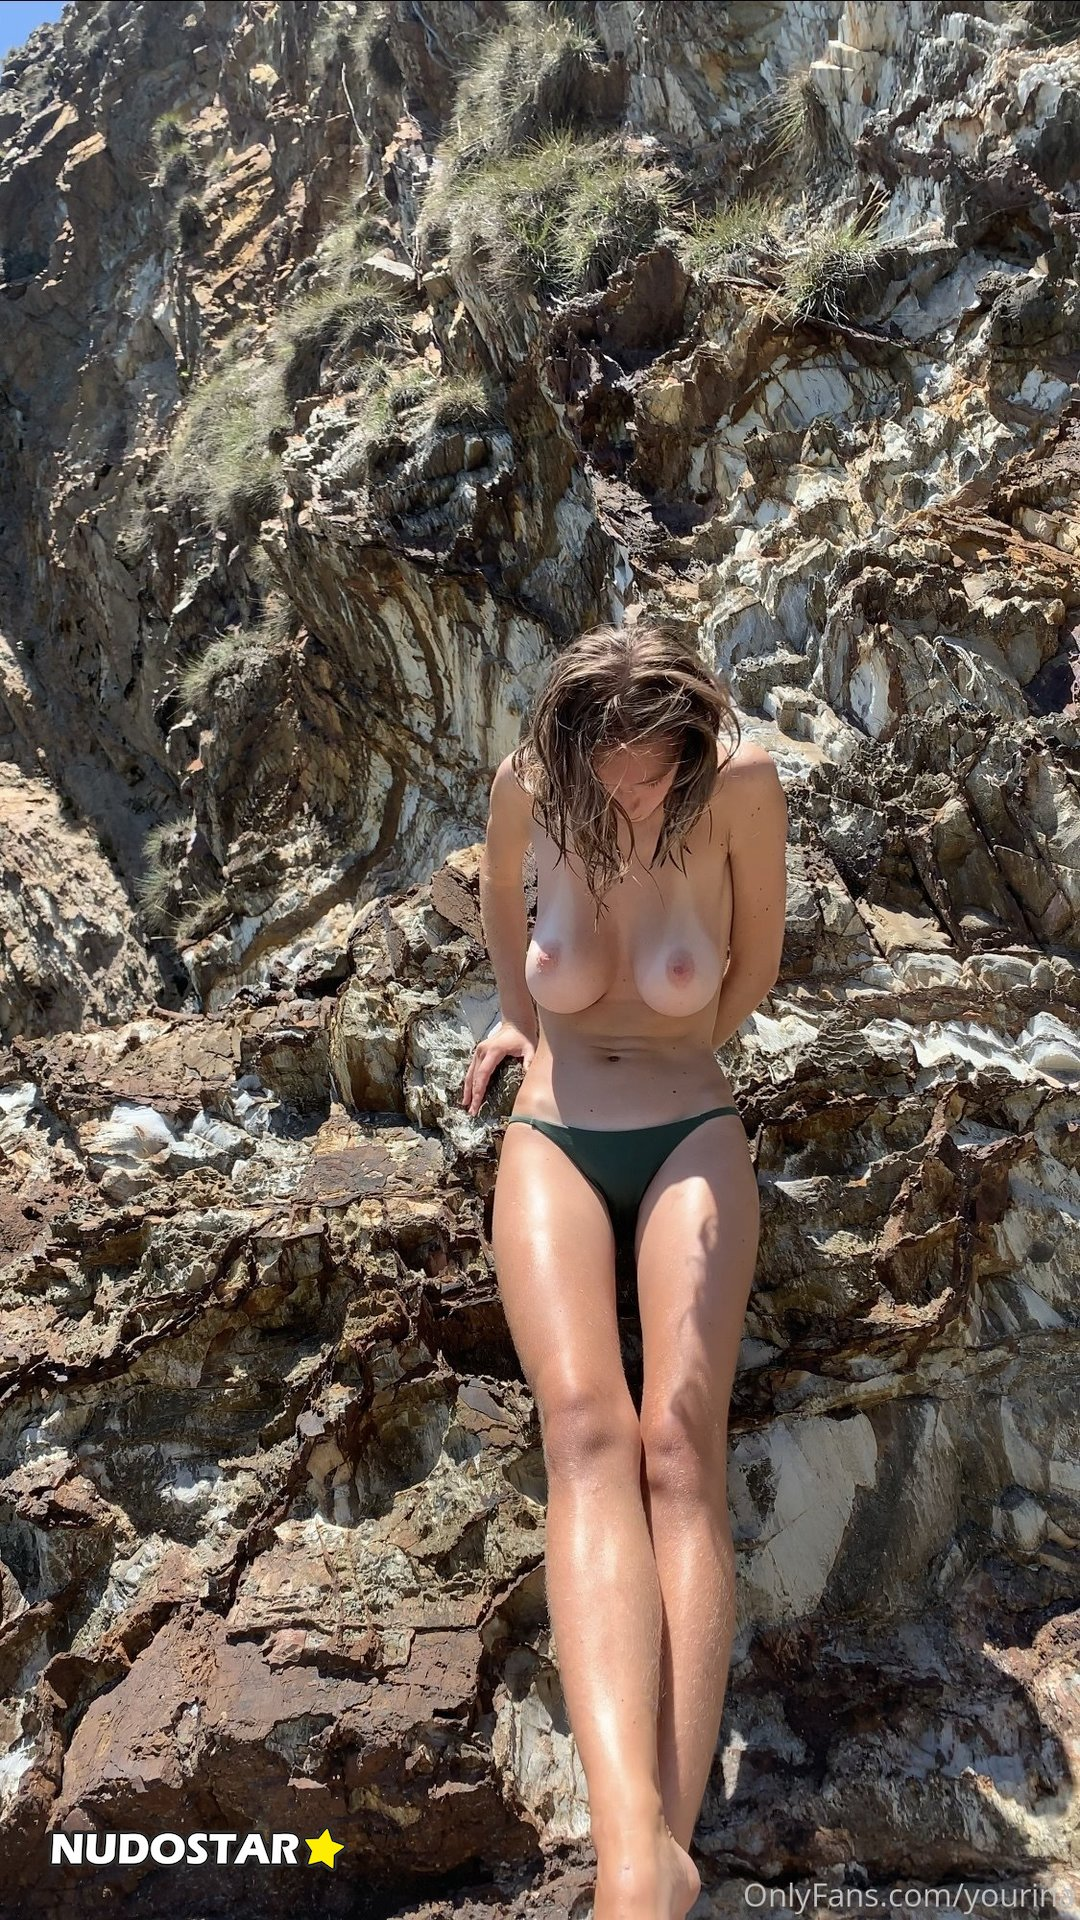 Yourina Onlyfans Nudes Leaks 0016